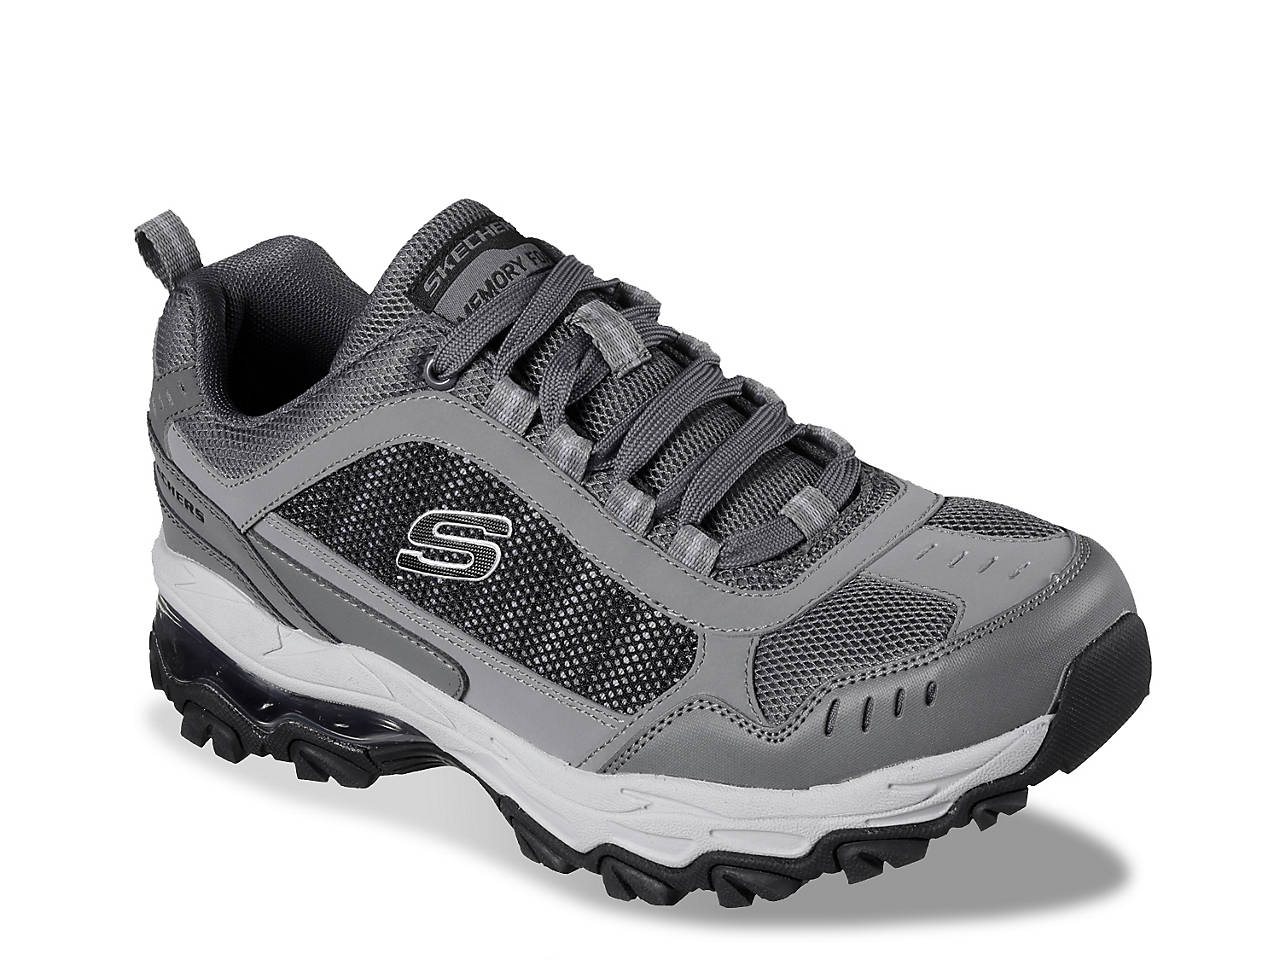 0ae01e1bb1b2 Skechers After Burn M Fit Air Sneaker - Men s Men s Shoes